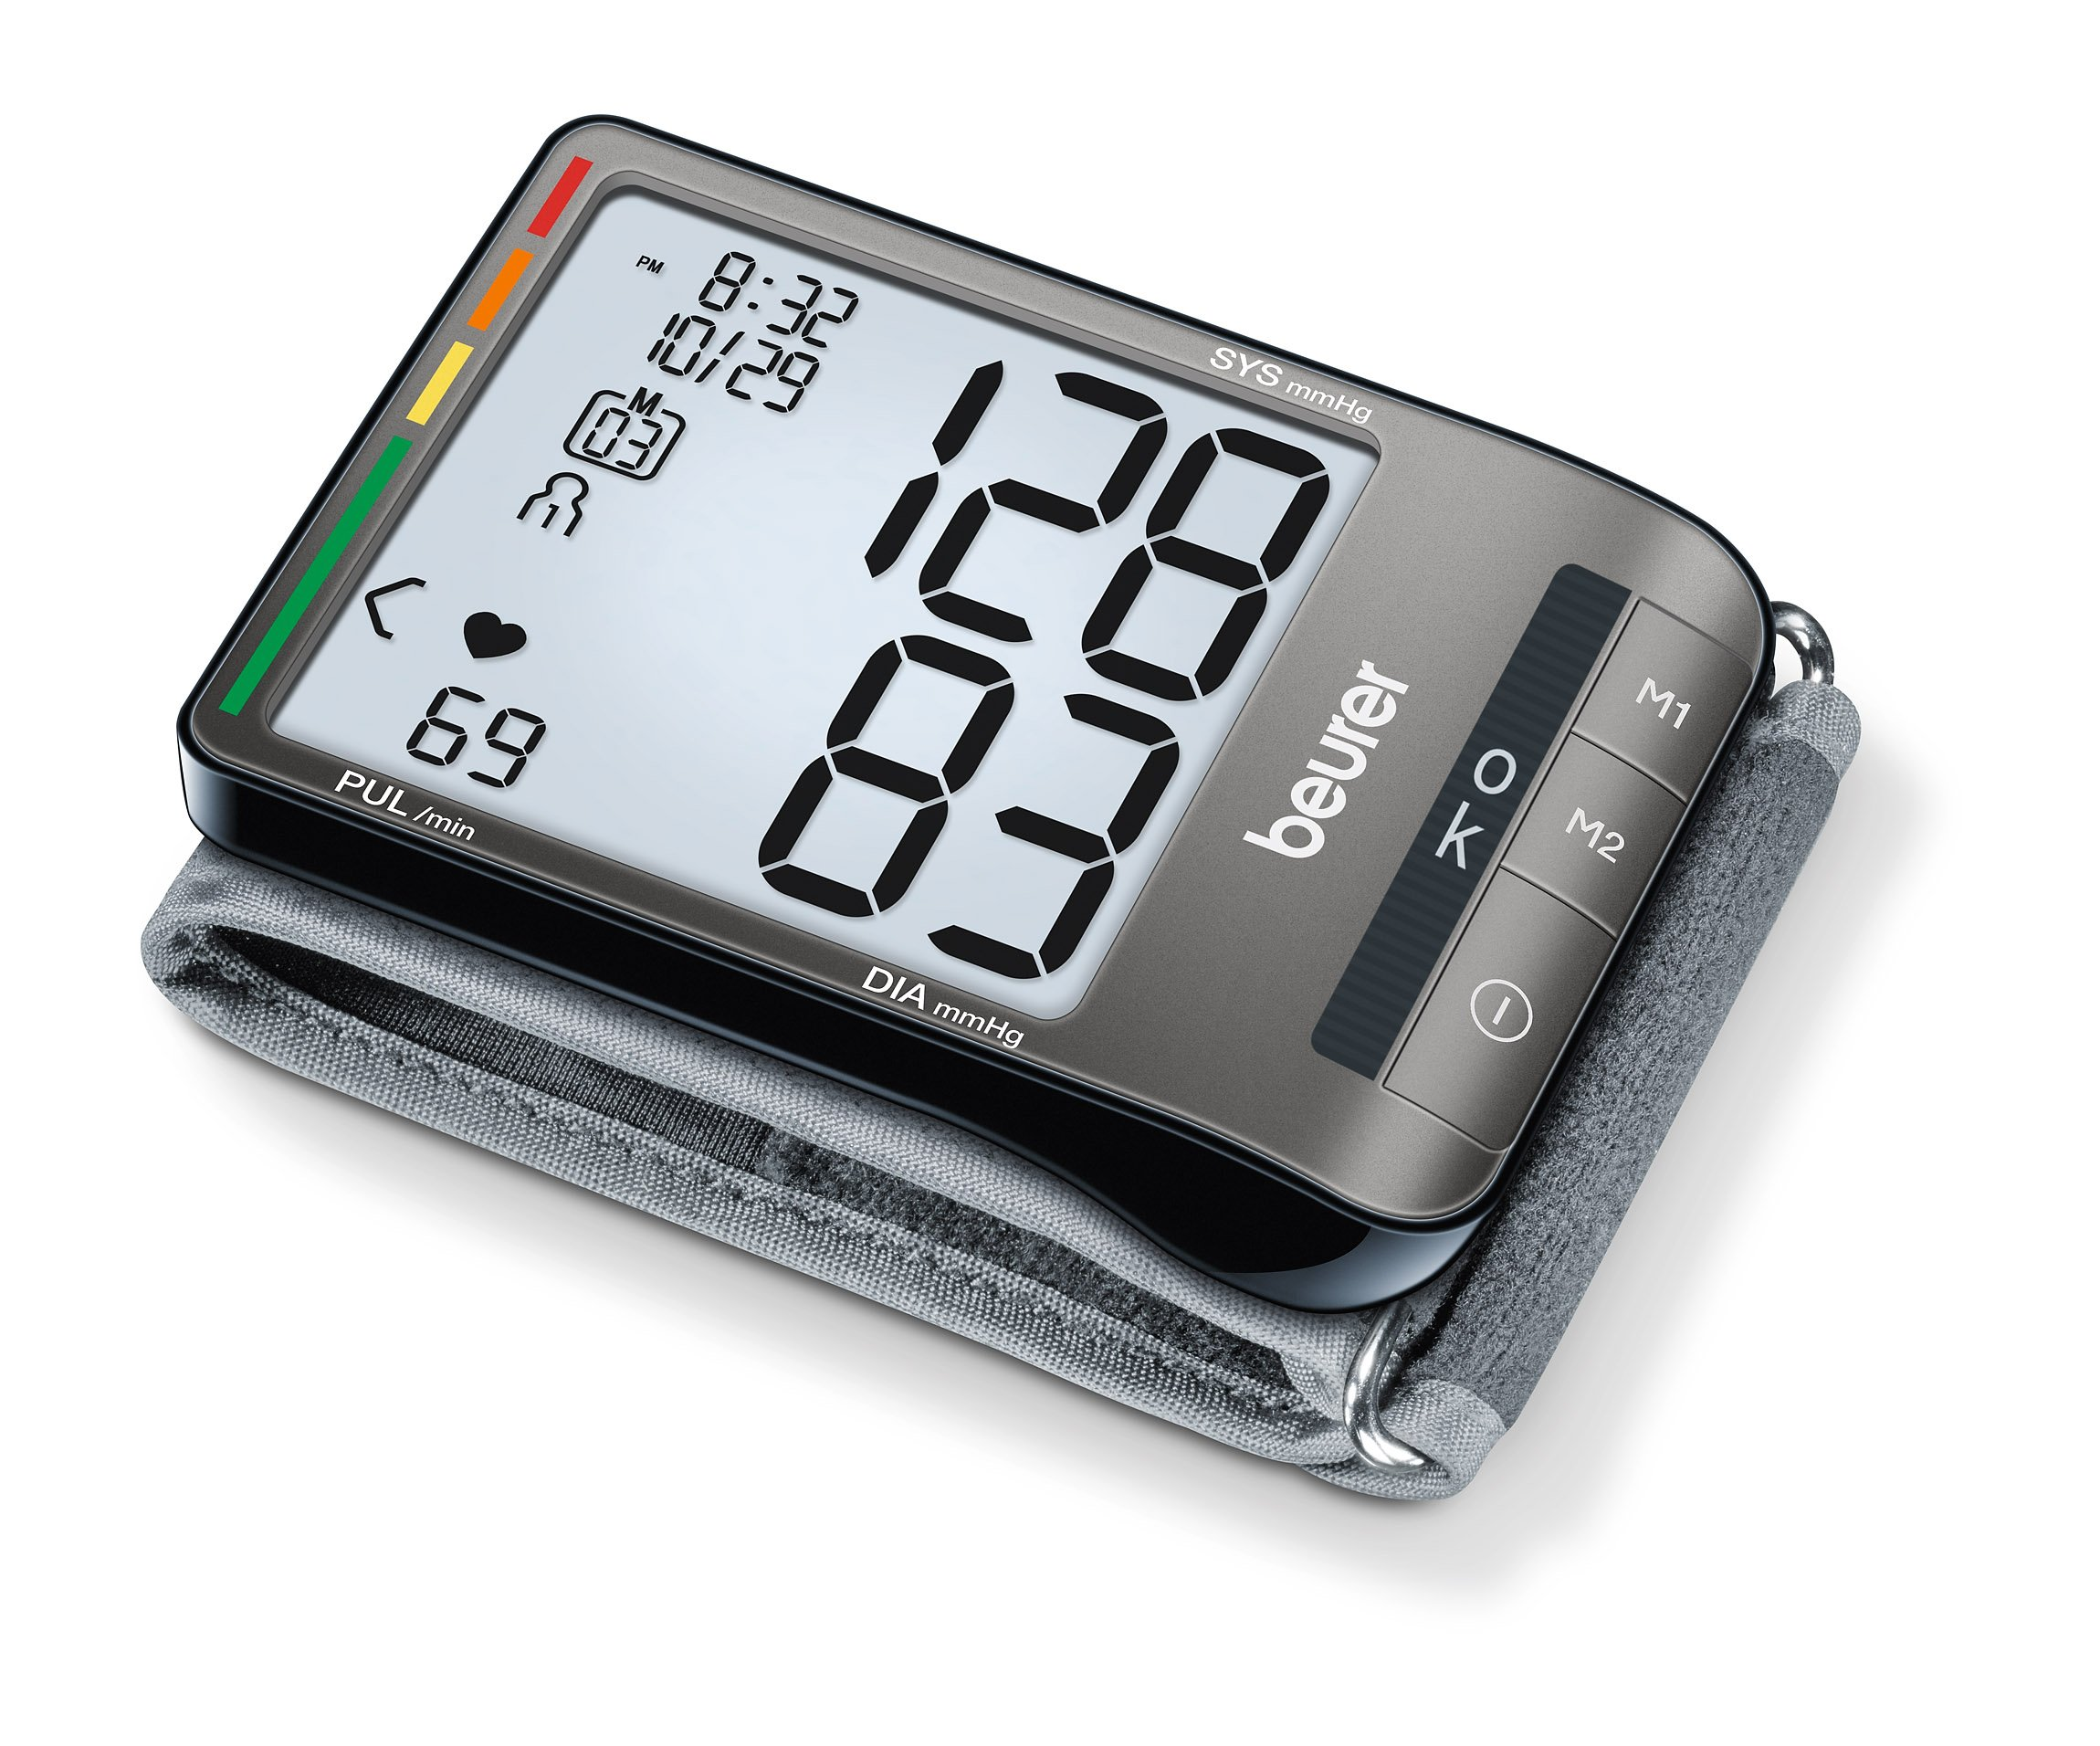 Beurer Wrist Blood Pressure Monitor, Fully Automatic with Accurate Readings, Adjustable Wrist Cuff and Large LCD Display